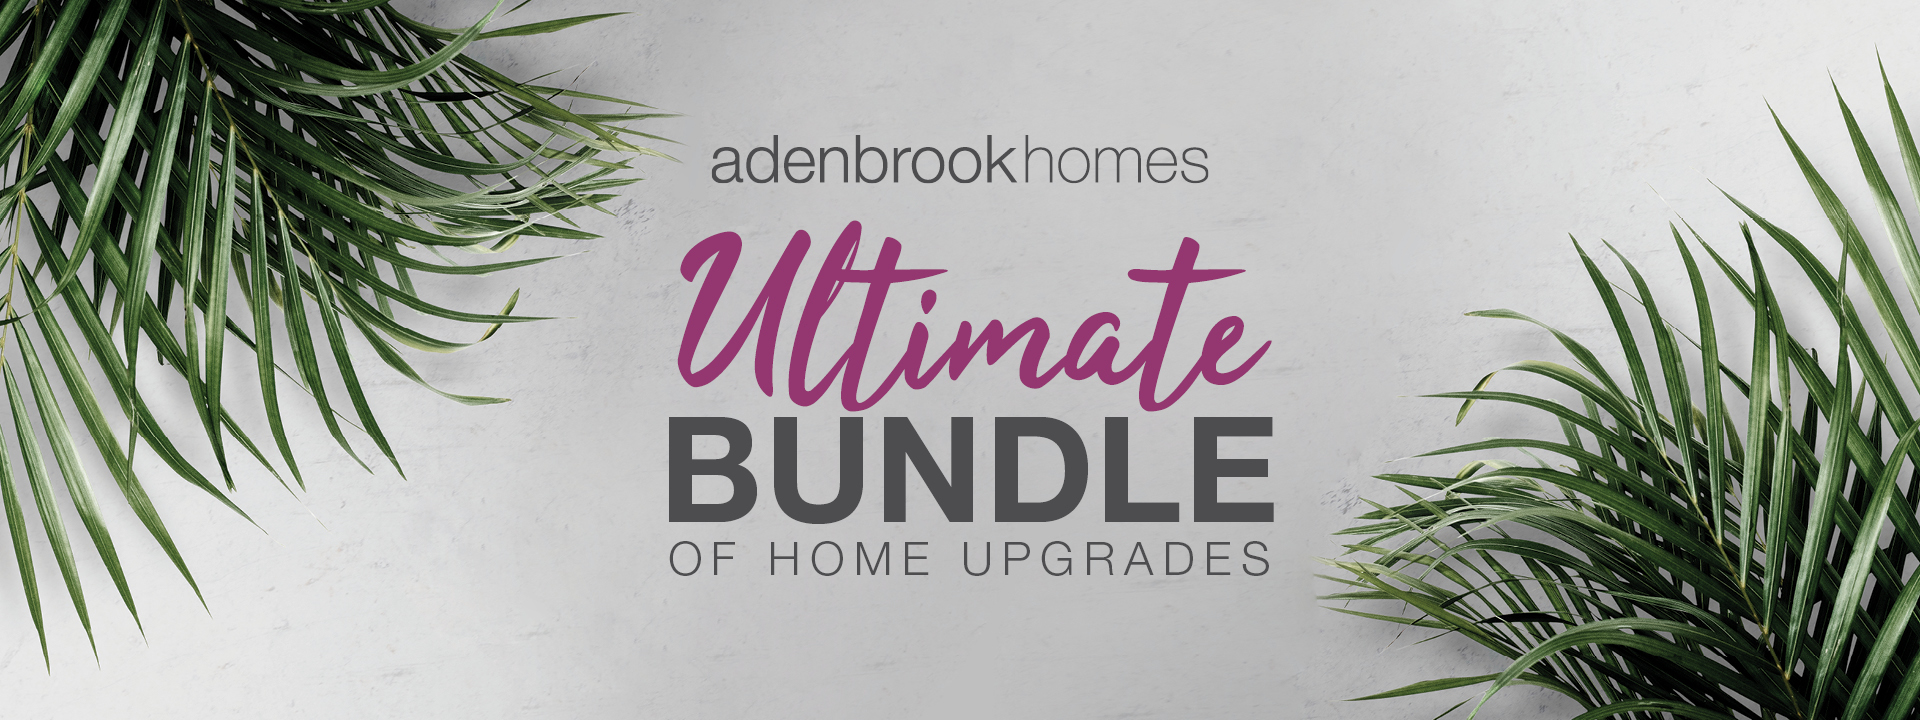 Ultimate Bundle 1920x720 header